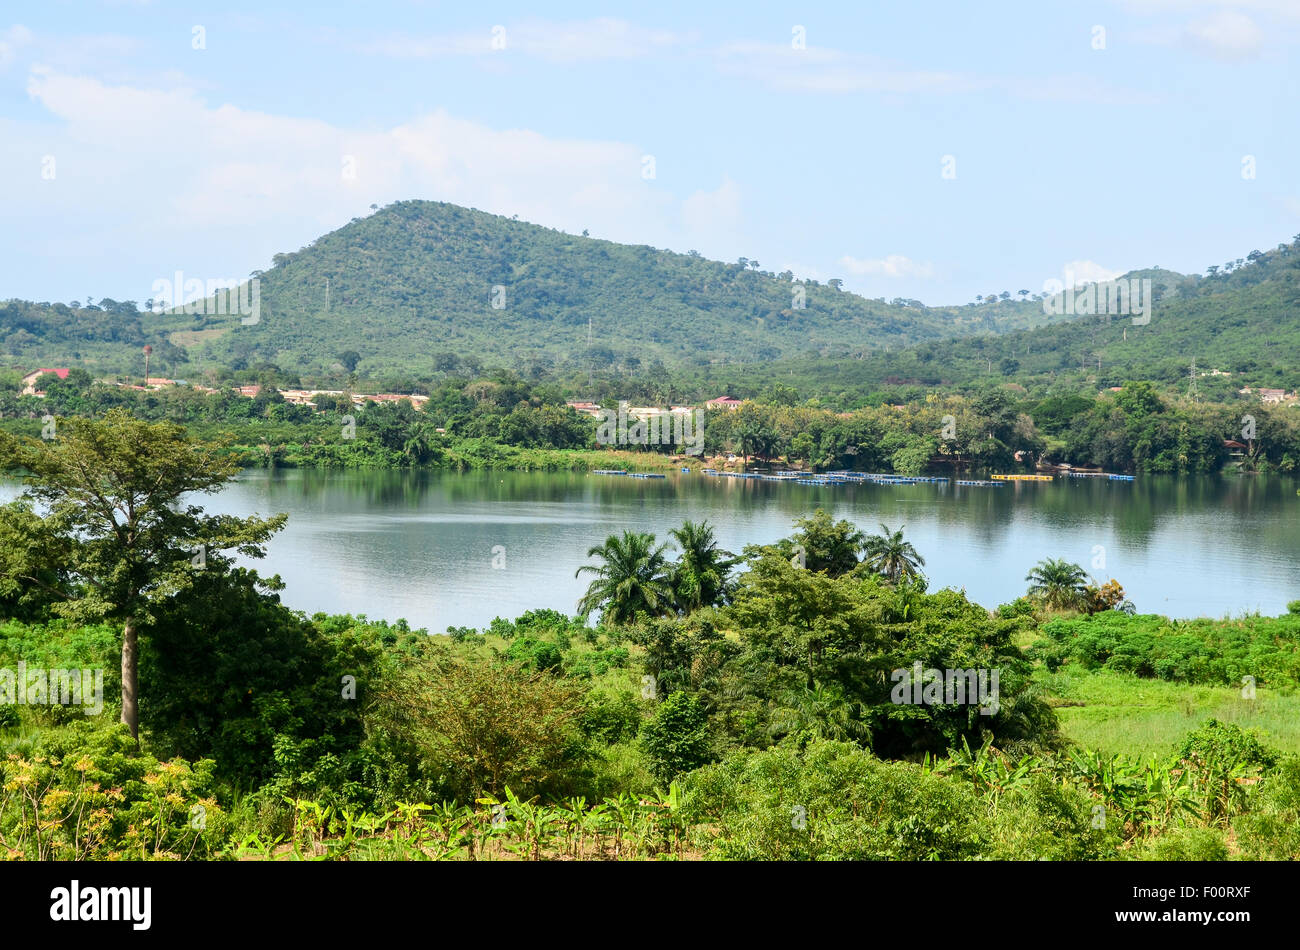 Landscape of Africa (Ghana), by the Volta river just downstream the Akosombo dam - Stock Image